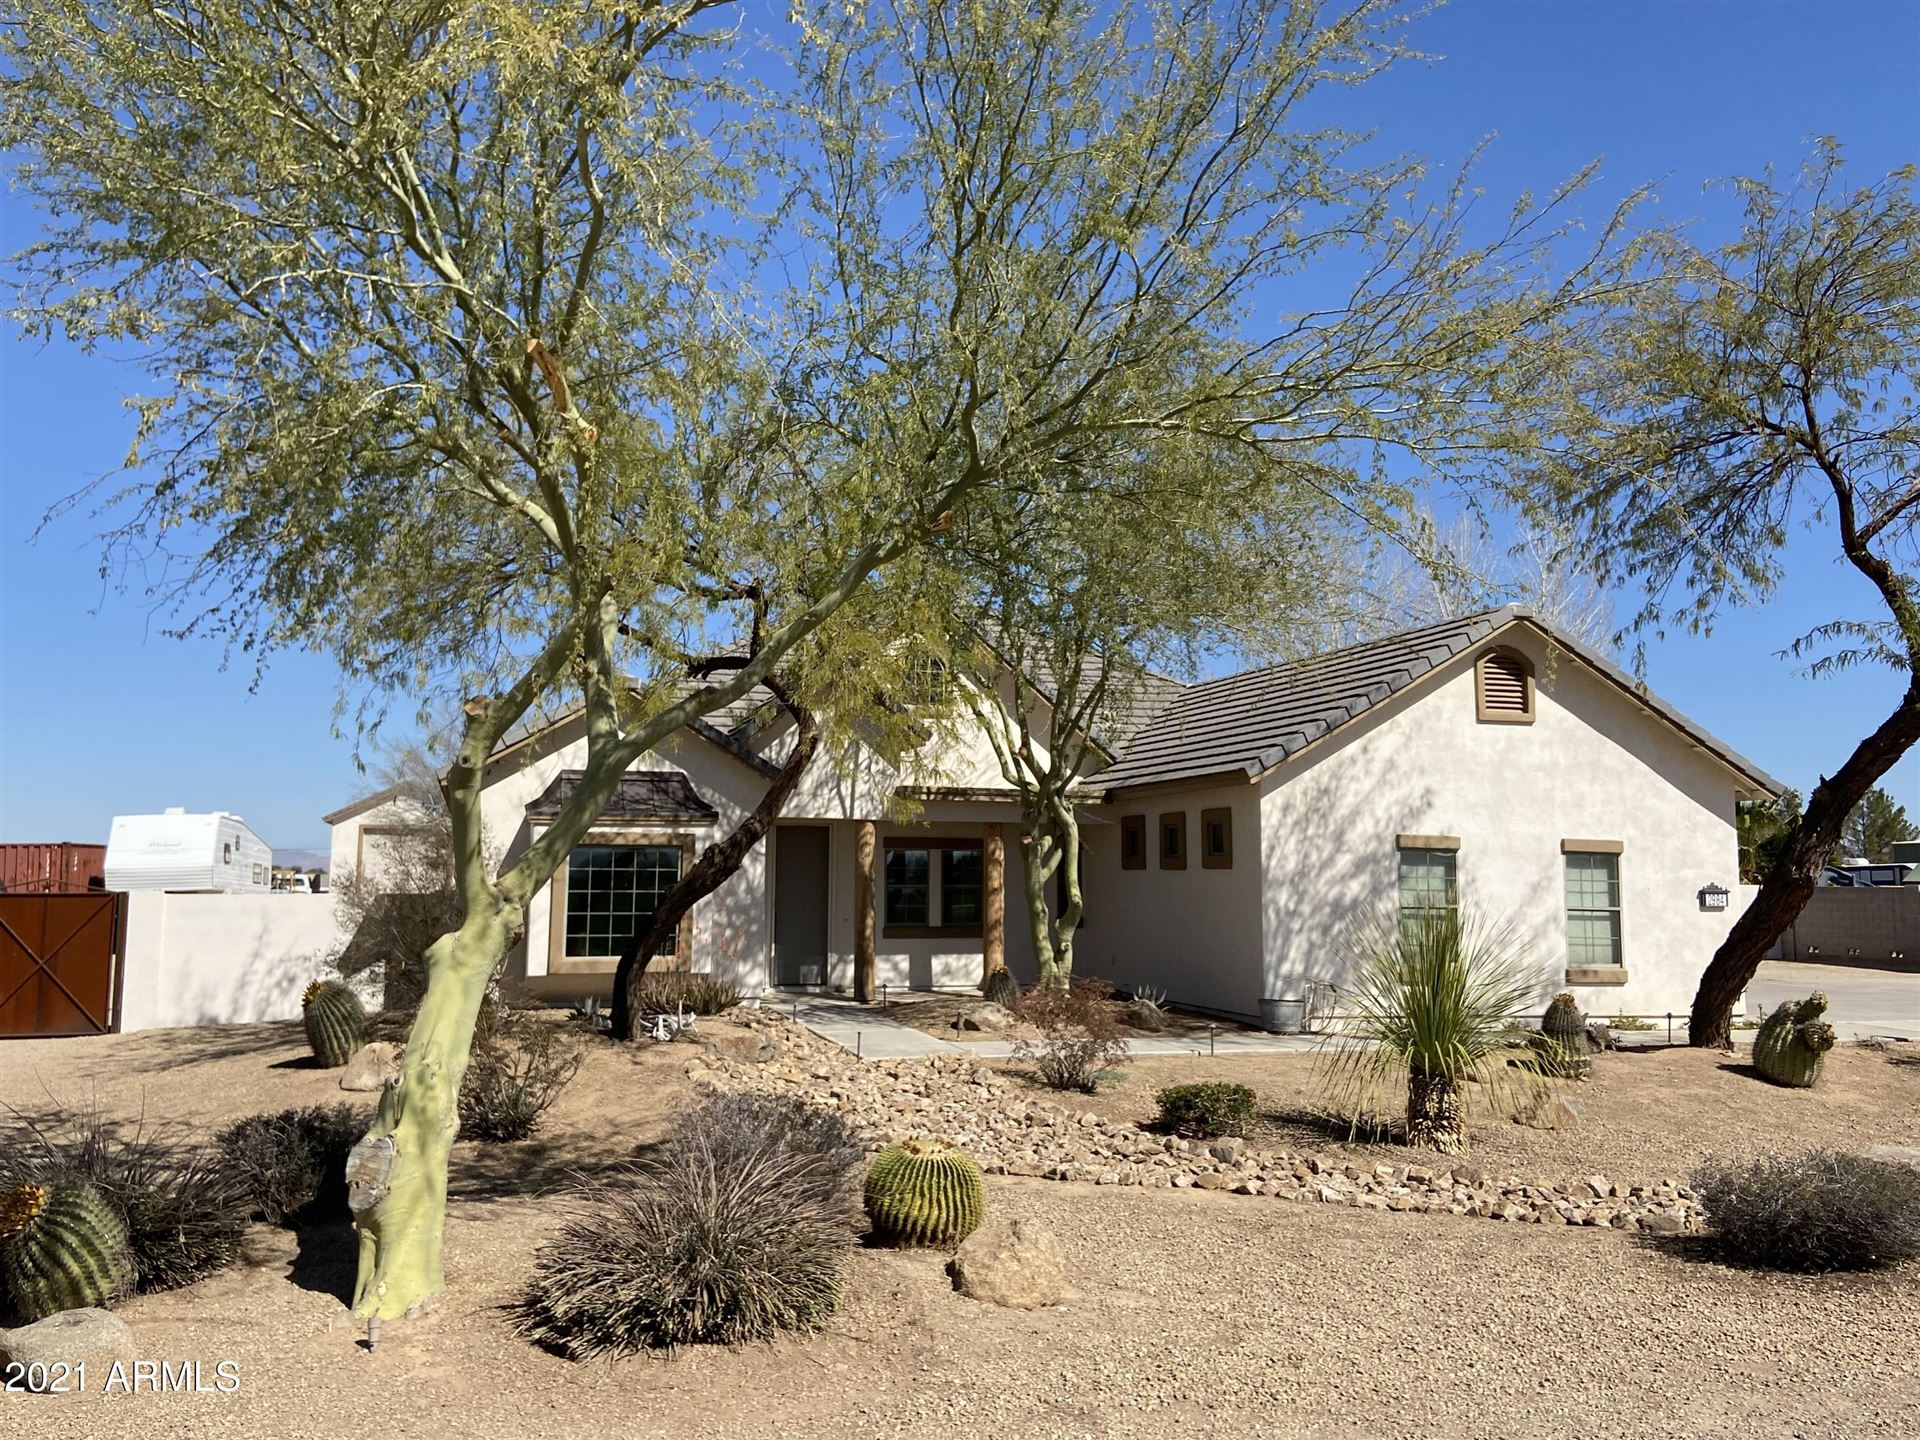 Photo of 2984 E HORSE MESA Trail, San Tan Valley, AZ 85140 (MLS # 6203470)